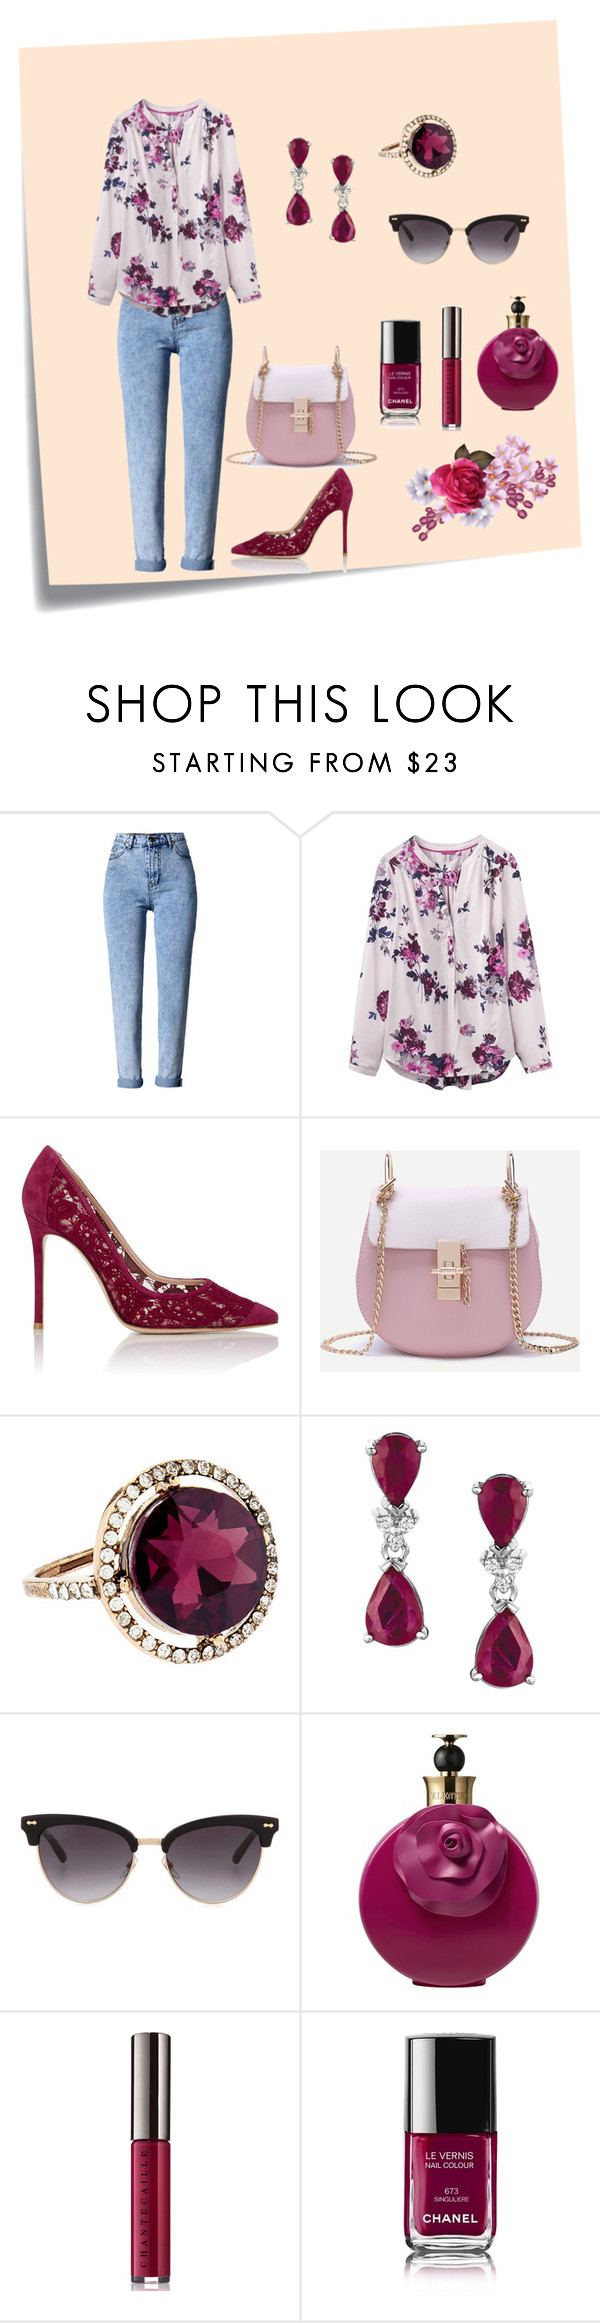 """Púrpura e jeans"" by megeller on Polyvore featuring moda, Post-It, WithChic, Joules, Gianvito Rossi, Accessorize, Gucci, Valentino, Chantecaille e Chanel"